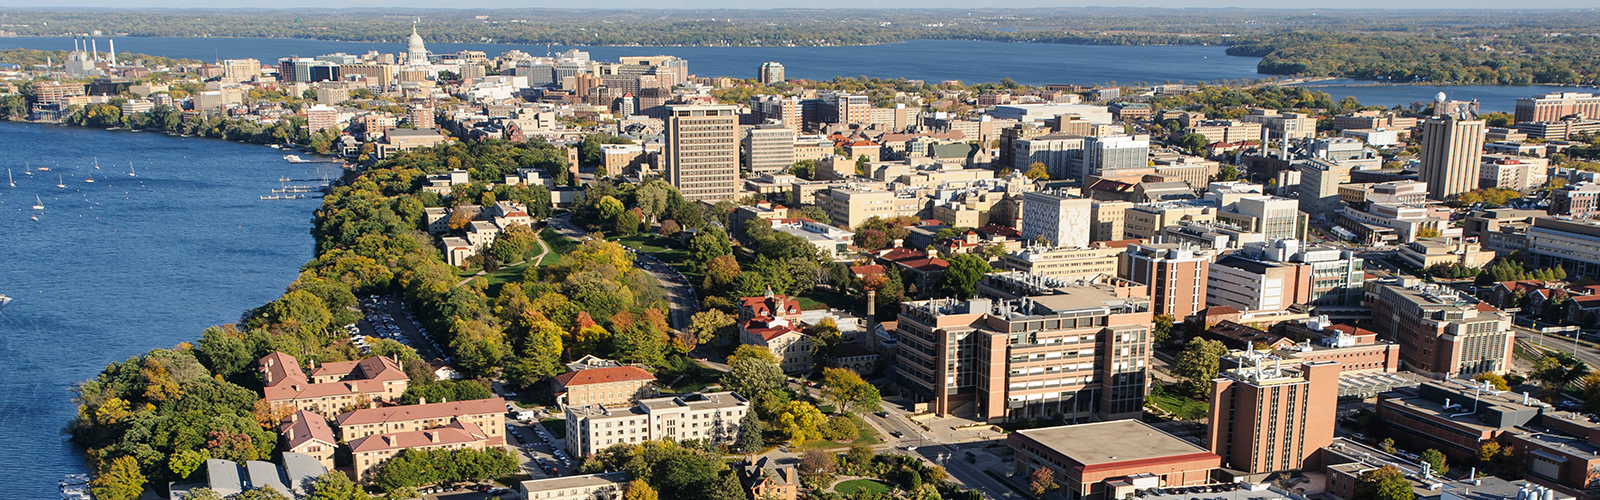 Bottom Image - UW-Madison Aerial Skyline